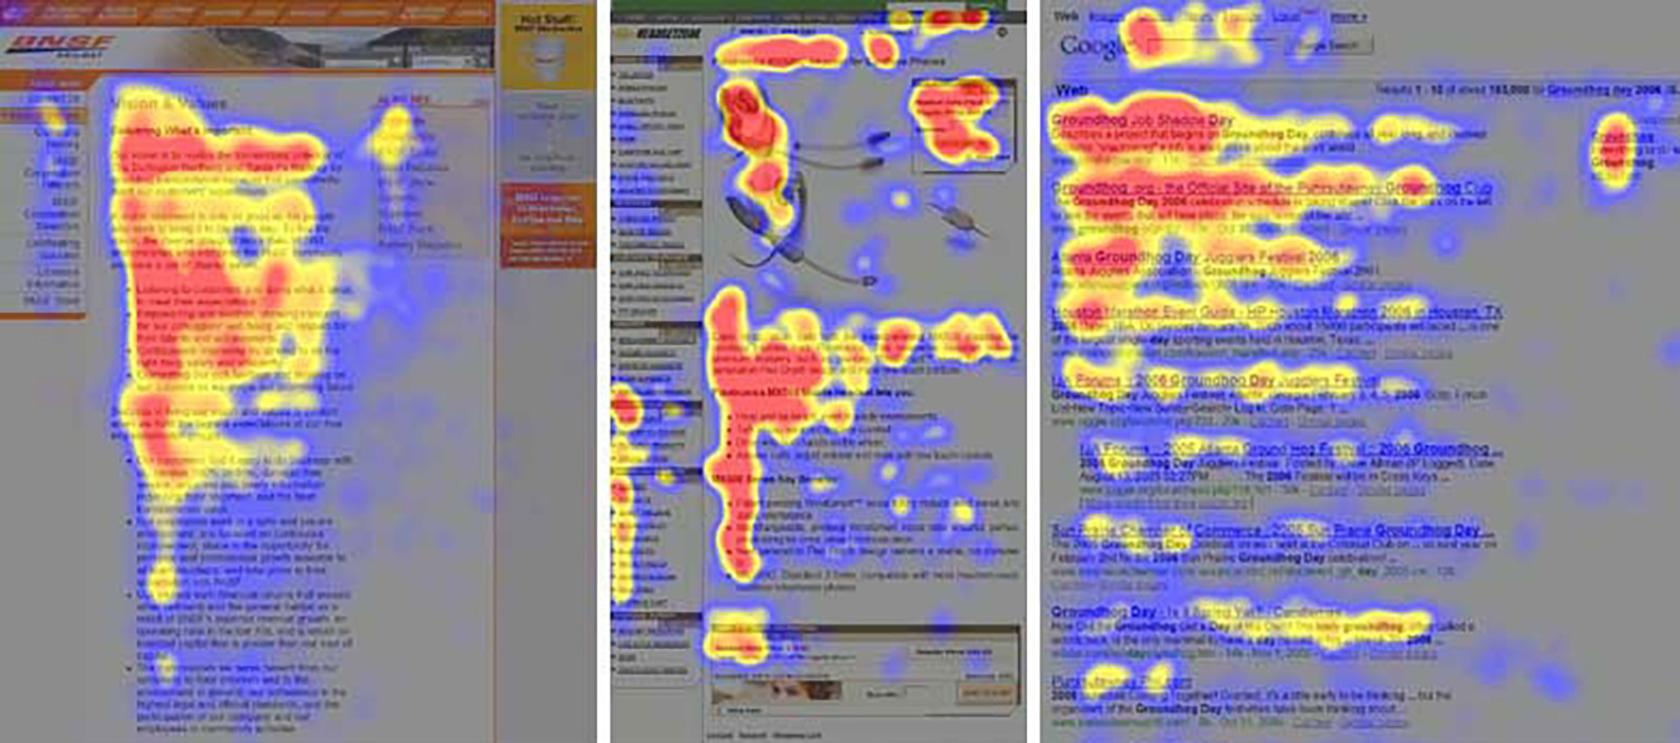 Eyetracking study F-pattern scanning and reading content on websites